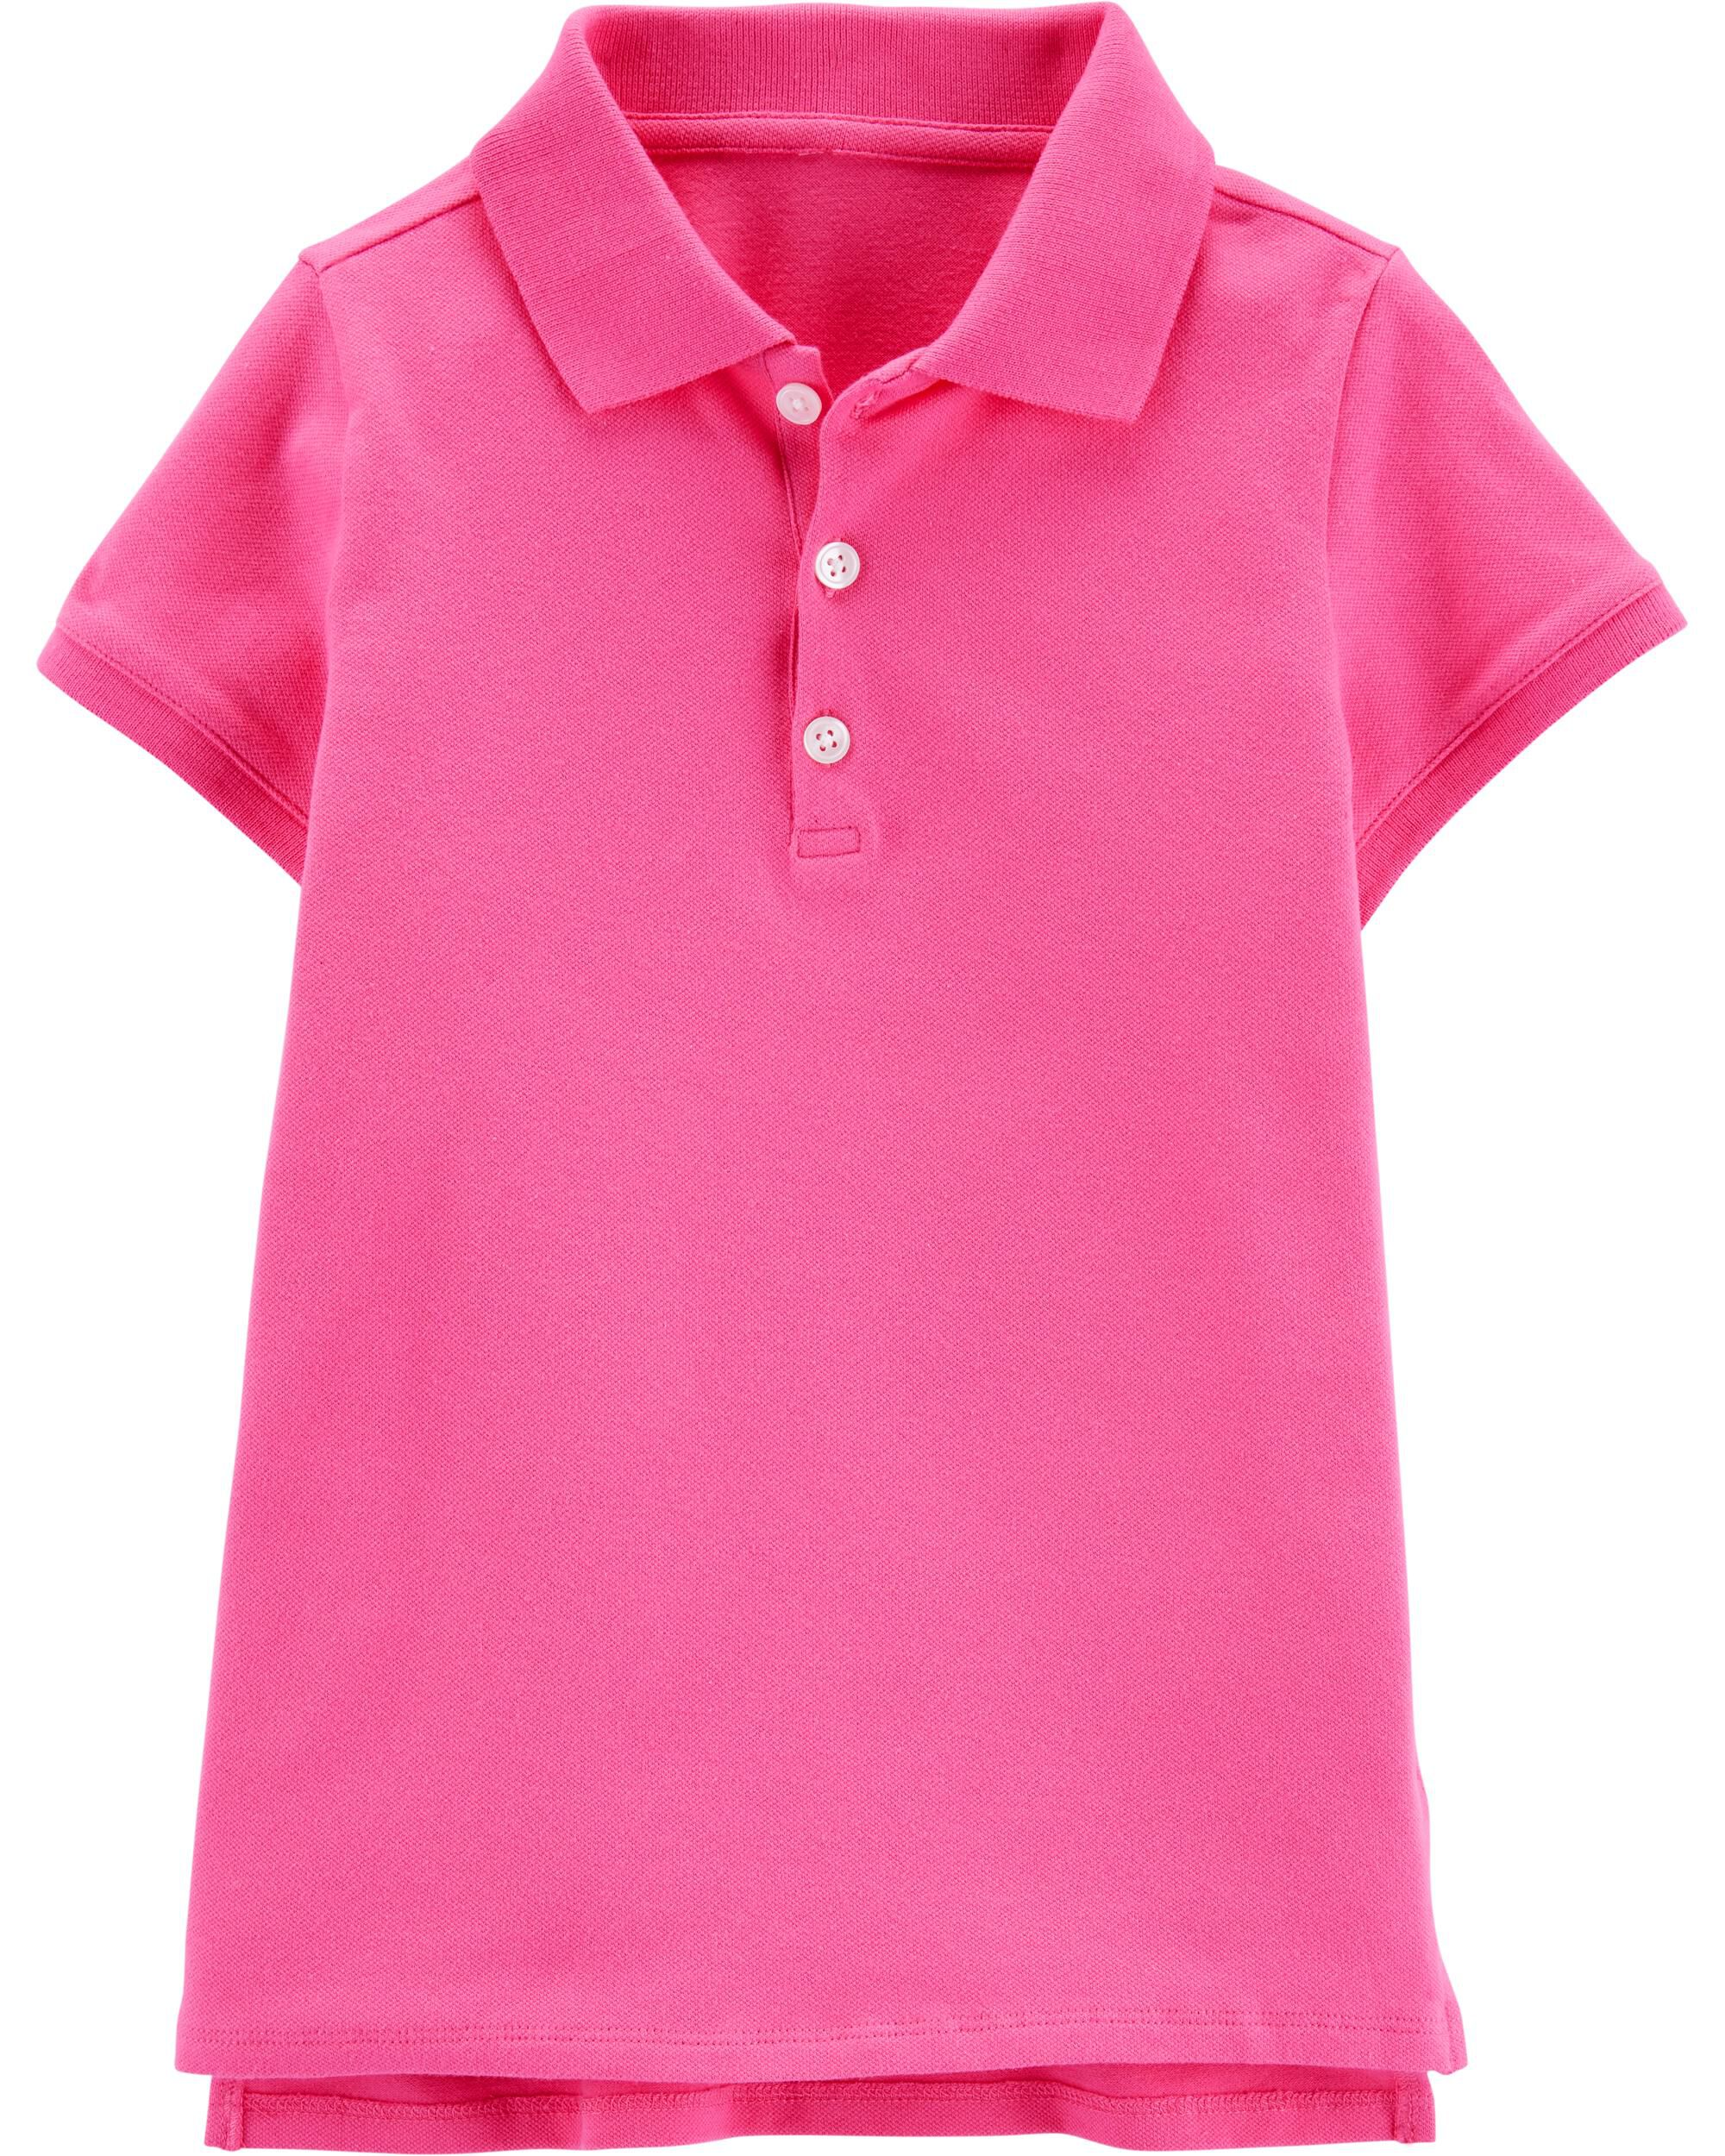 *DOORBUSTER* Stretch Uniform Polo